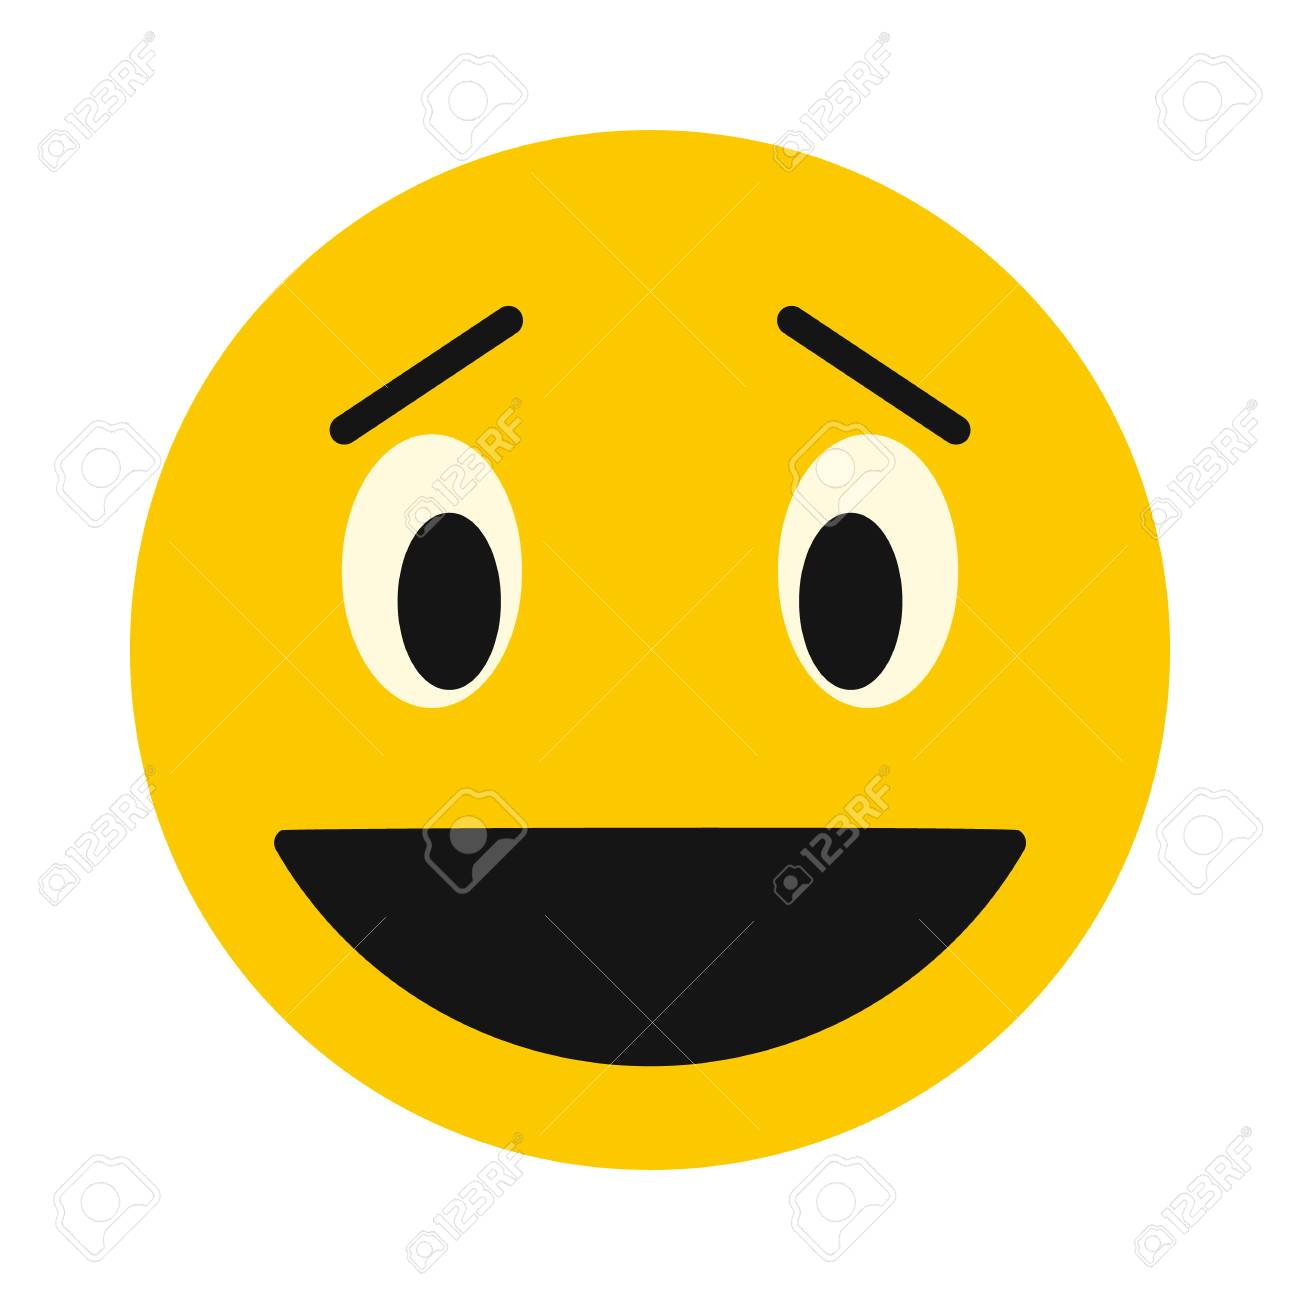 Laughing Smiley Face Icon In Flat Style Isolated On White Background Facial Expressions Symbol Stock